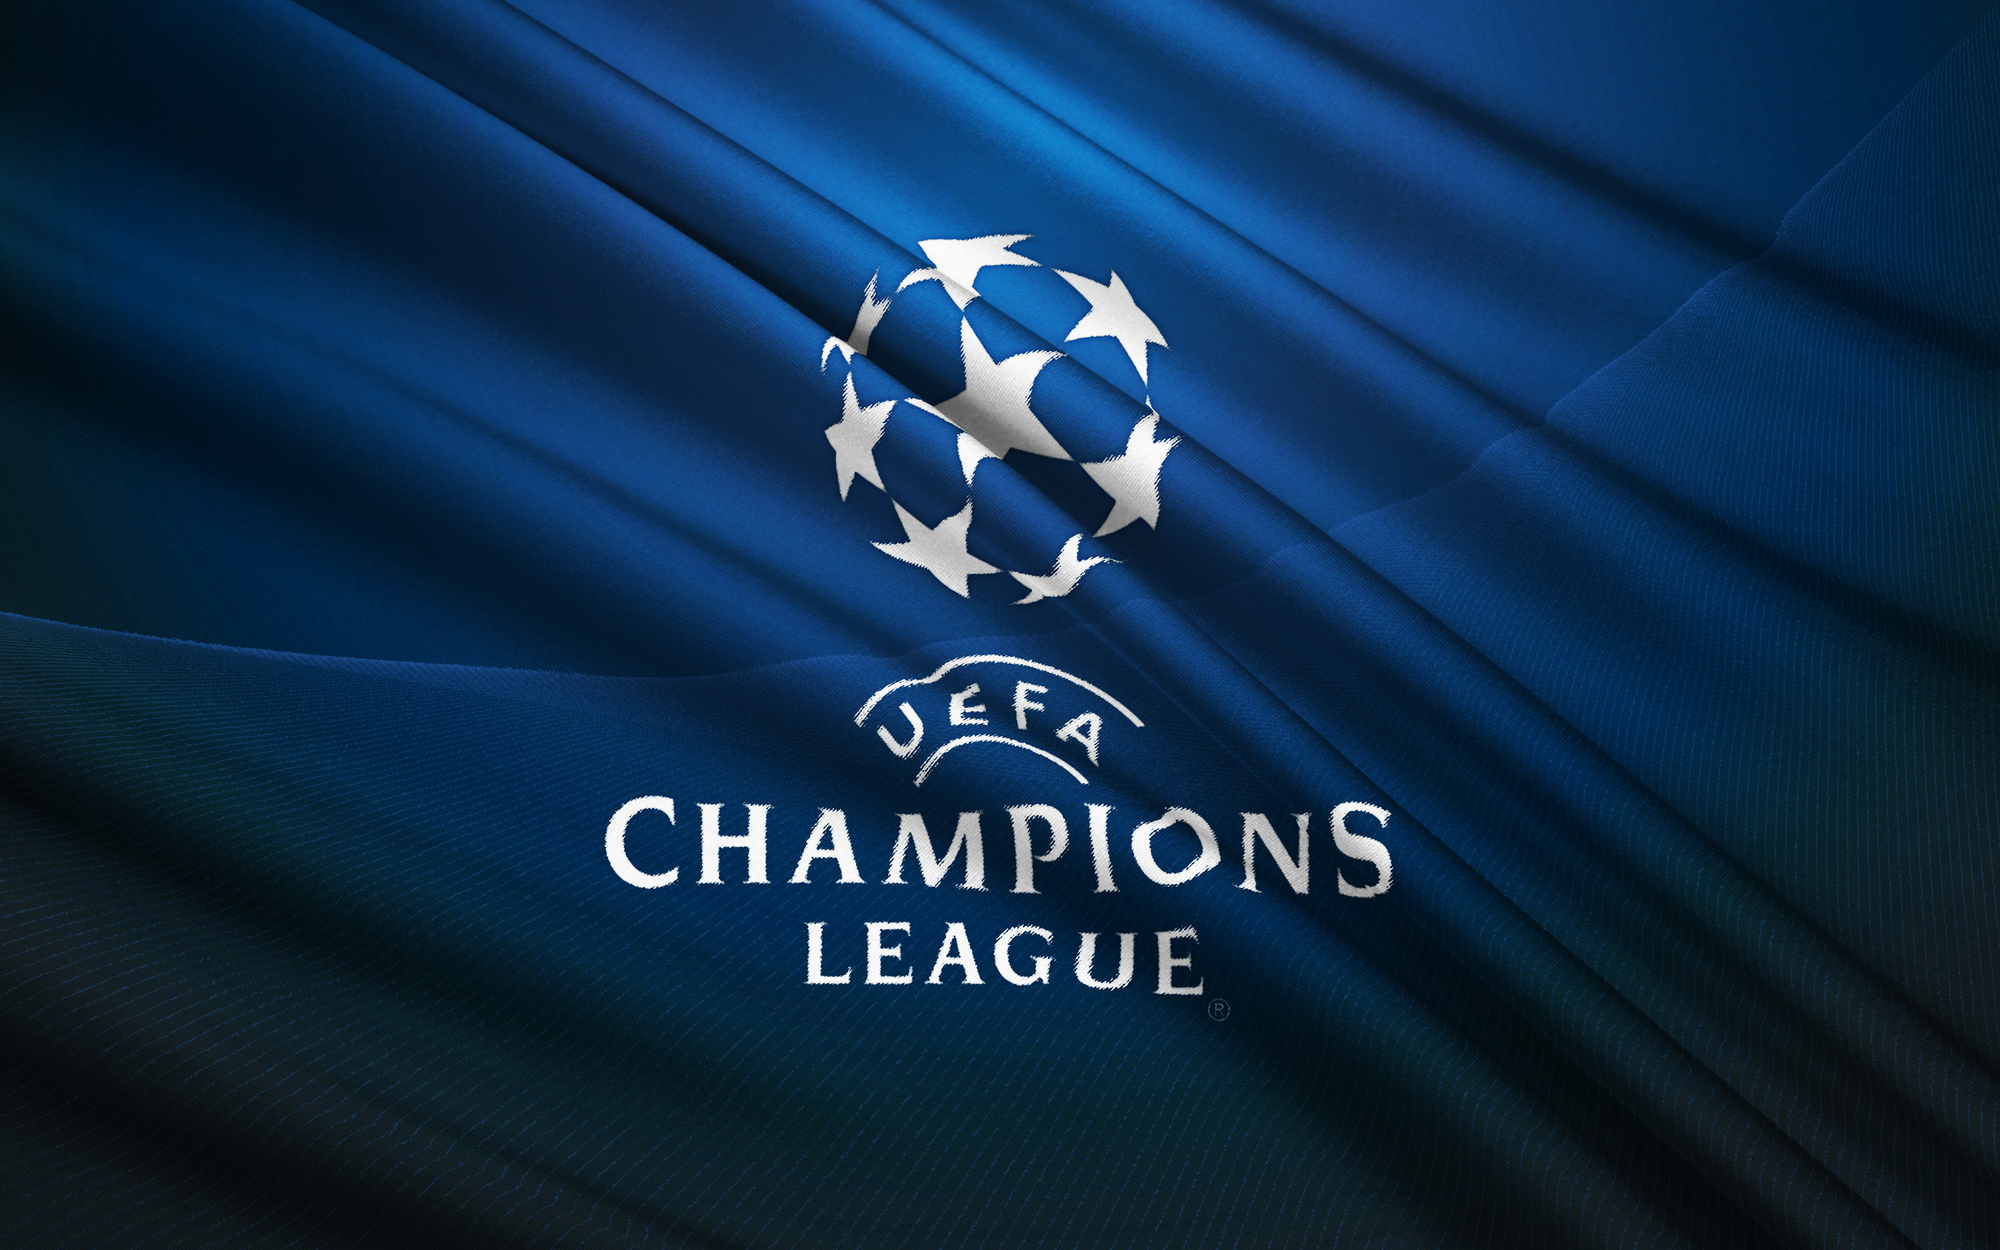 Top Champions League Predictions for the Round of 16